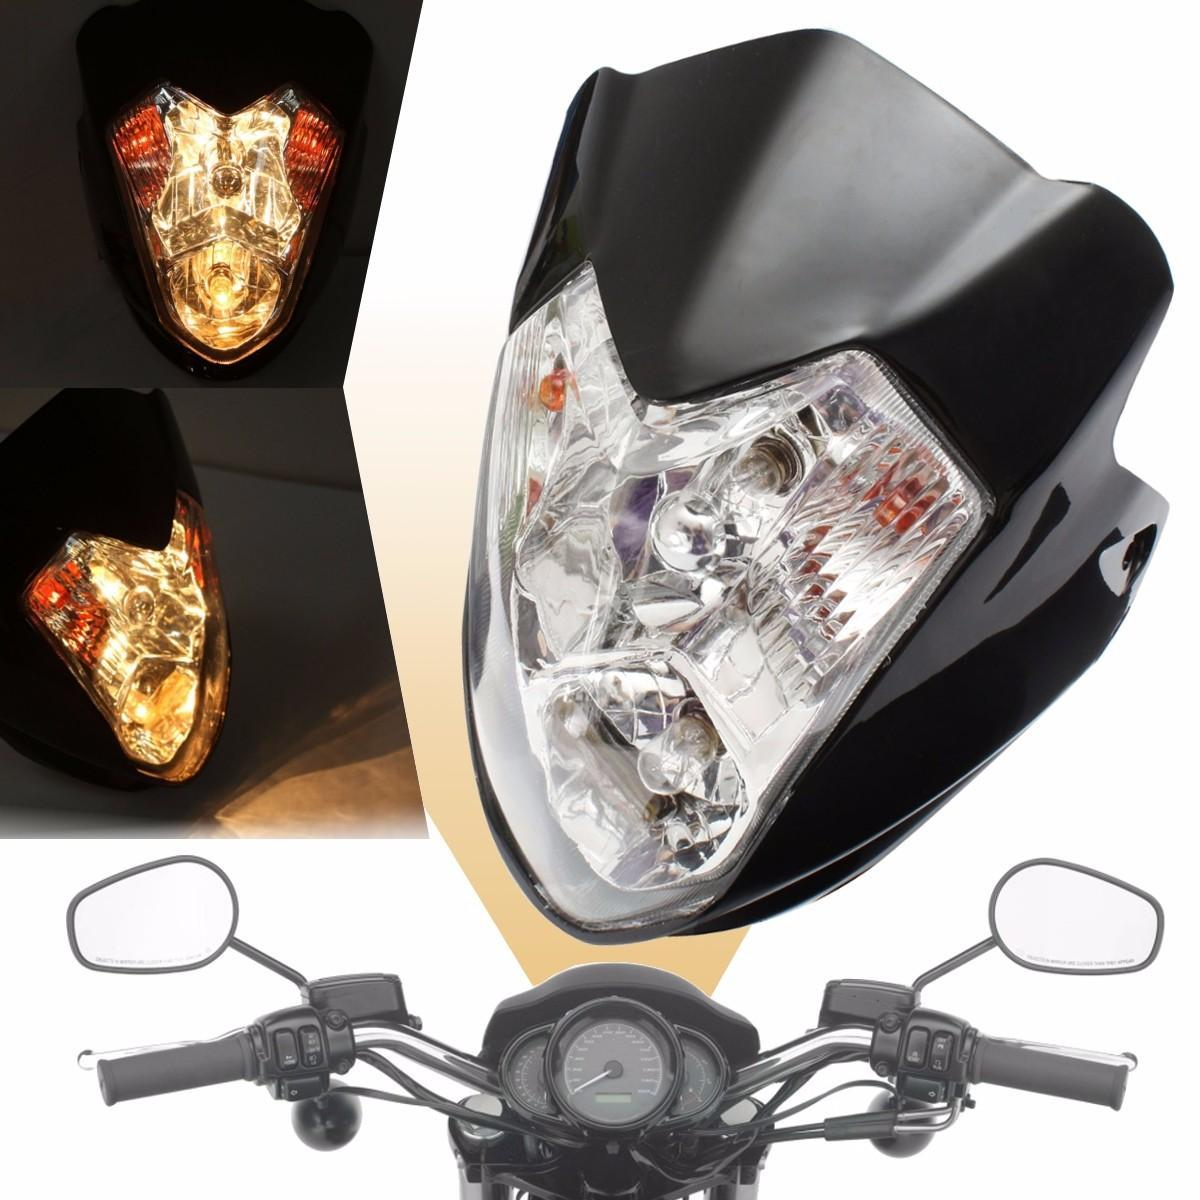 Streetfighter Headlight Lamp Black Motorcycle Bike Fairing Spyder Street Fighte Buy Online At Best Prices In Bangladesh Daraz Com Bd